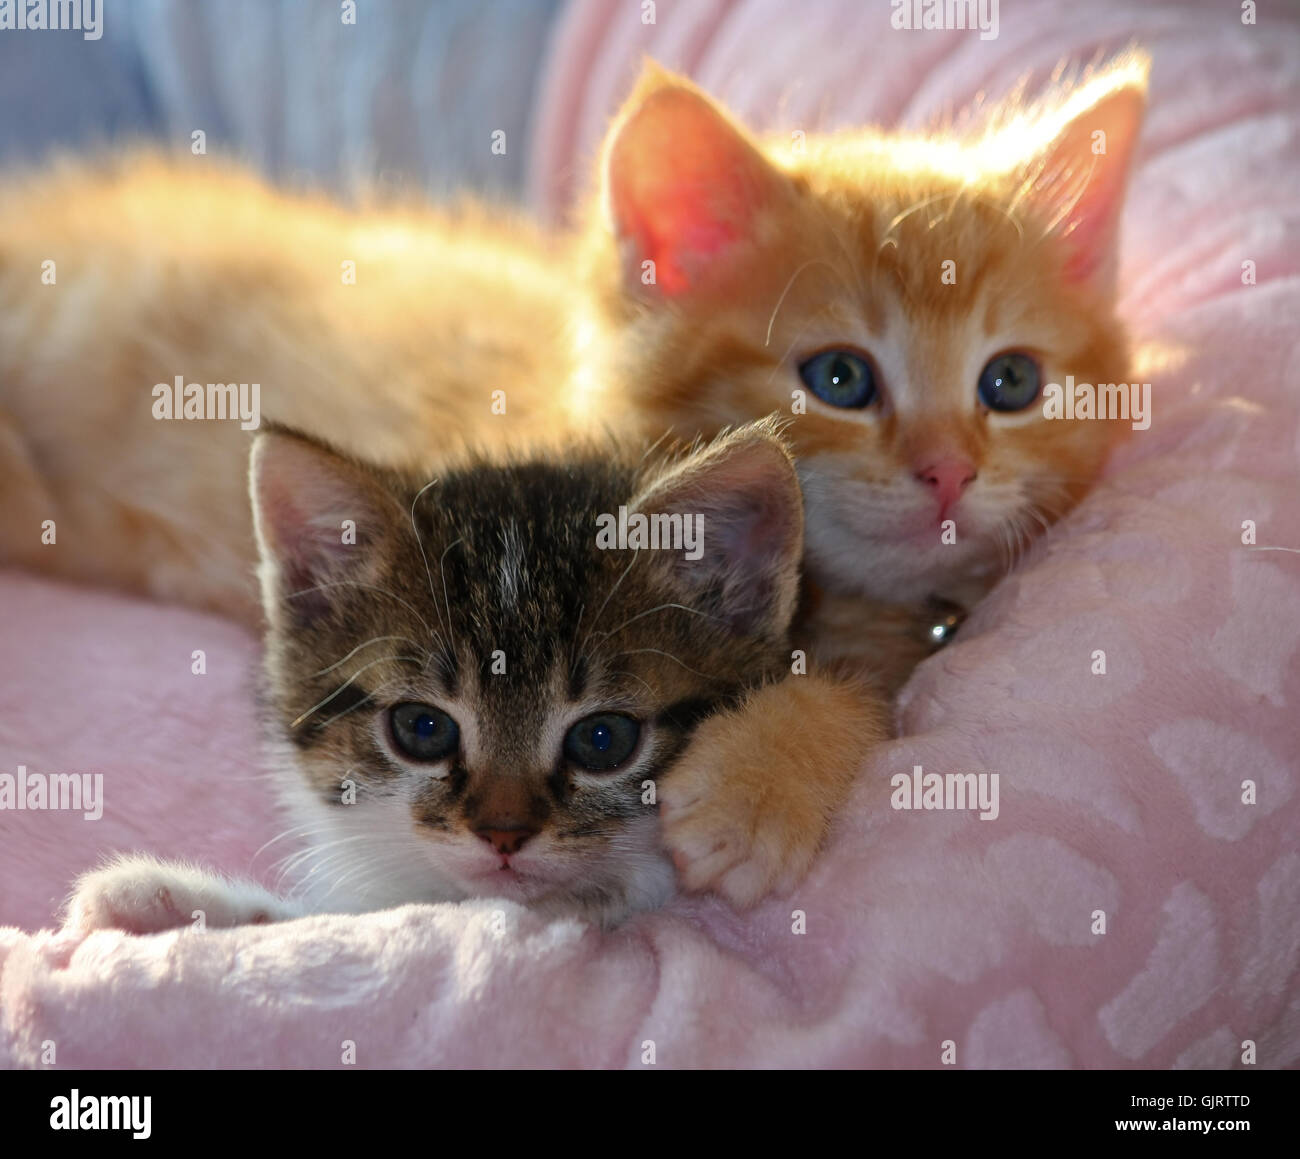 kittens - Stock Image